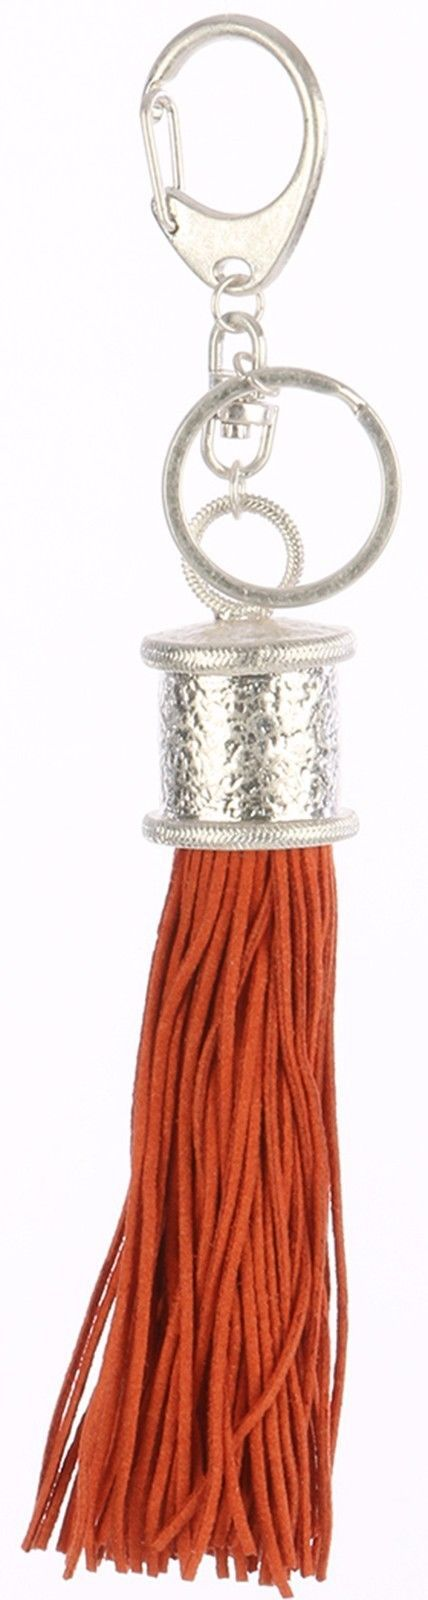 Tassel Key Chain Handbag Charm Accessory Key Fob Claw Hook Silvertone Peach